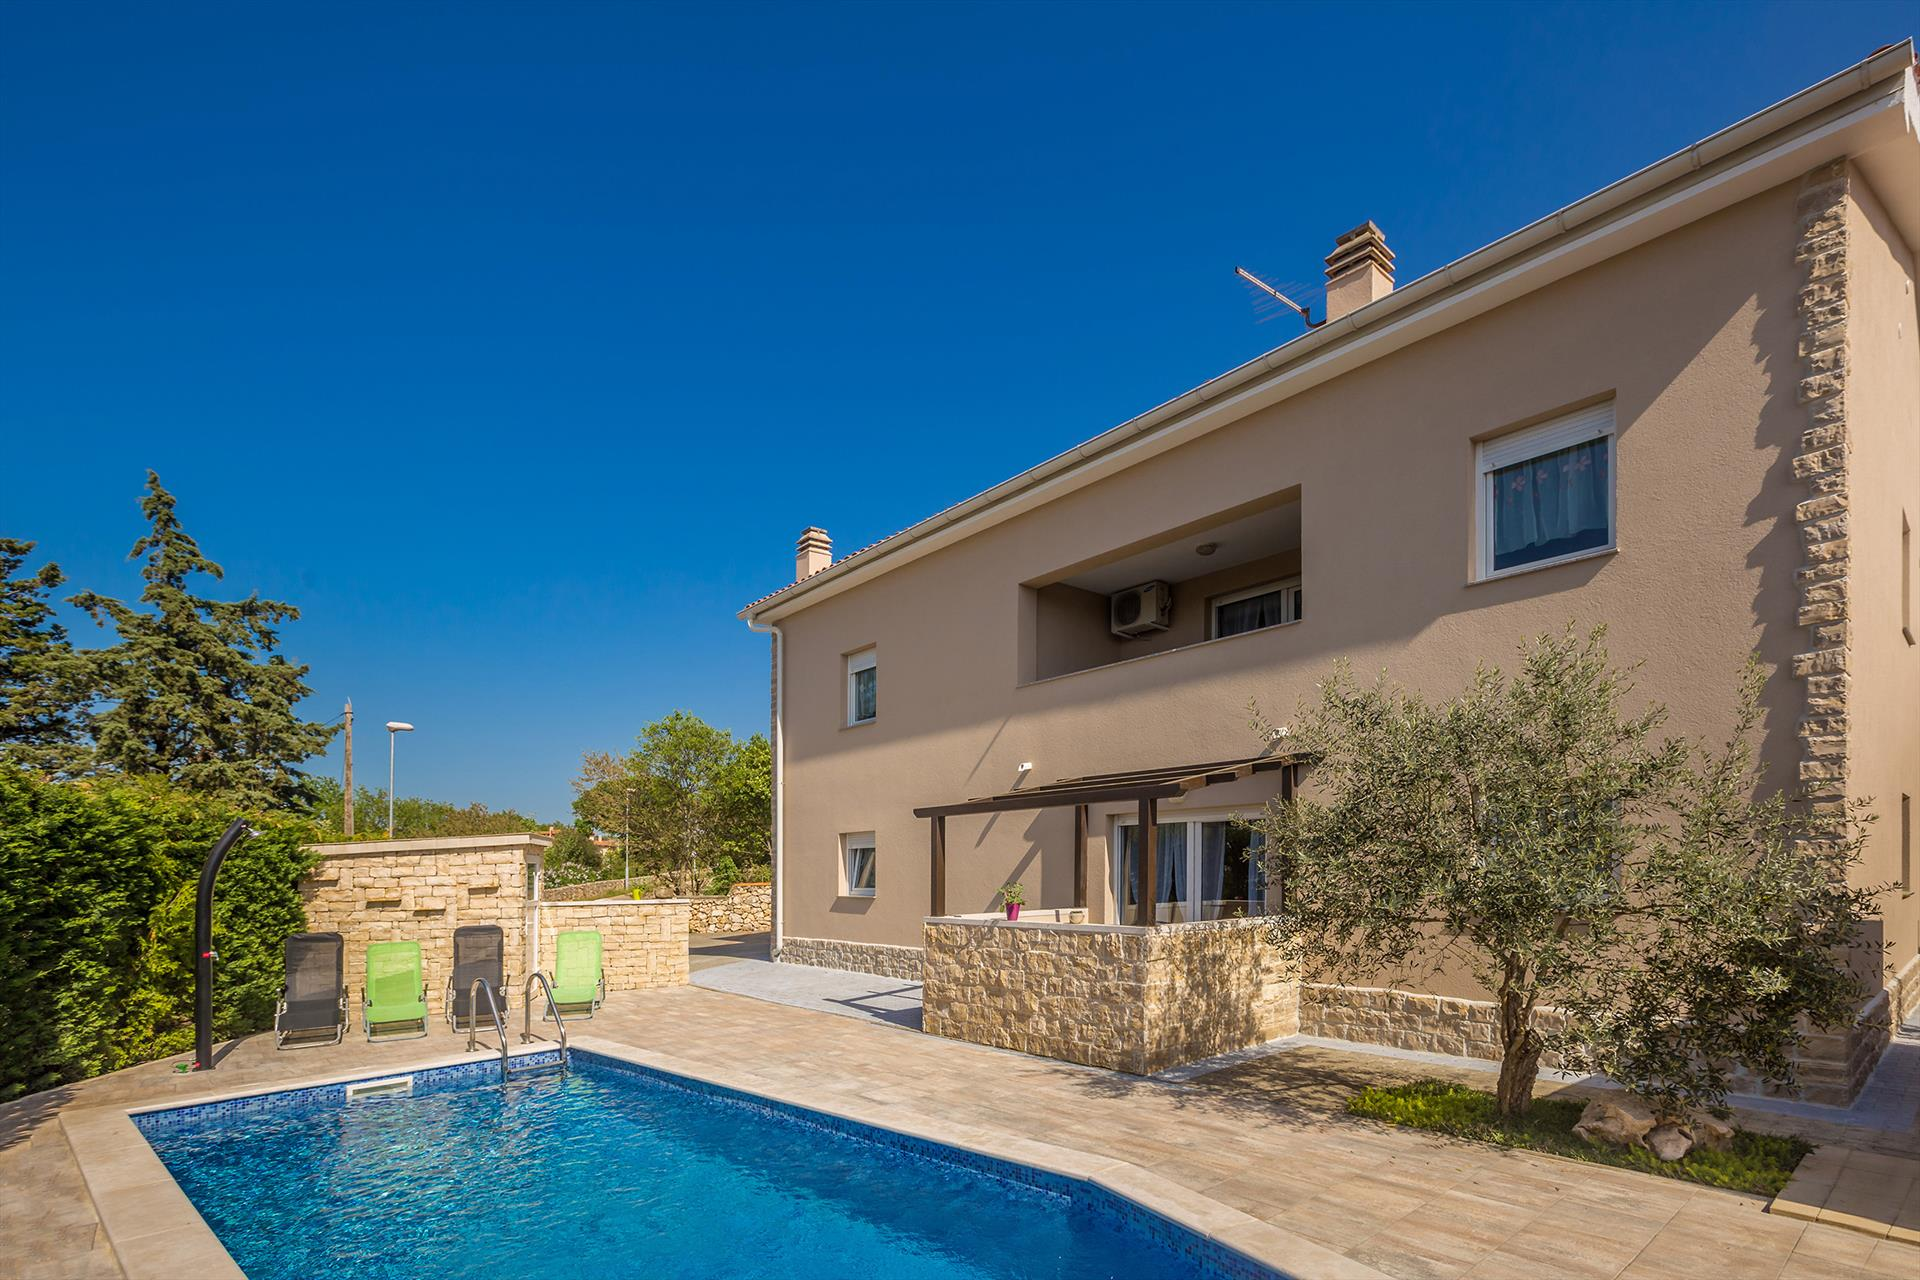 Modern cozy studio- swimming pool, yard, sitting area, grill, Liebliche und gemütliche Studio  mit privatem Pool in Pinezici, Island Krk, Kroatien für 2 Personen...